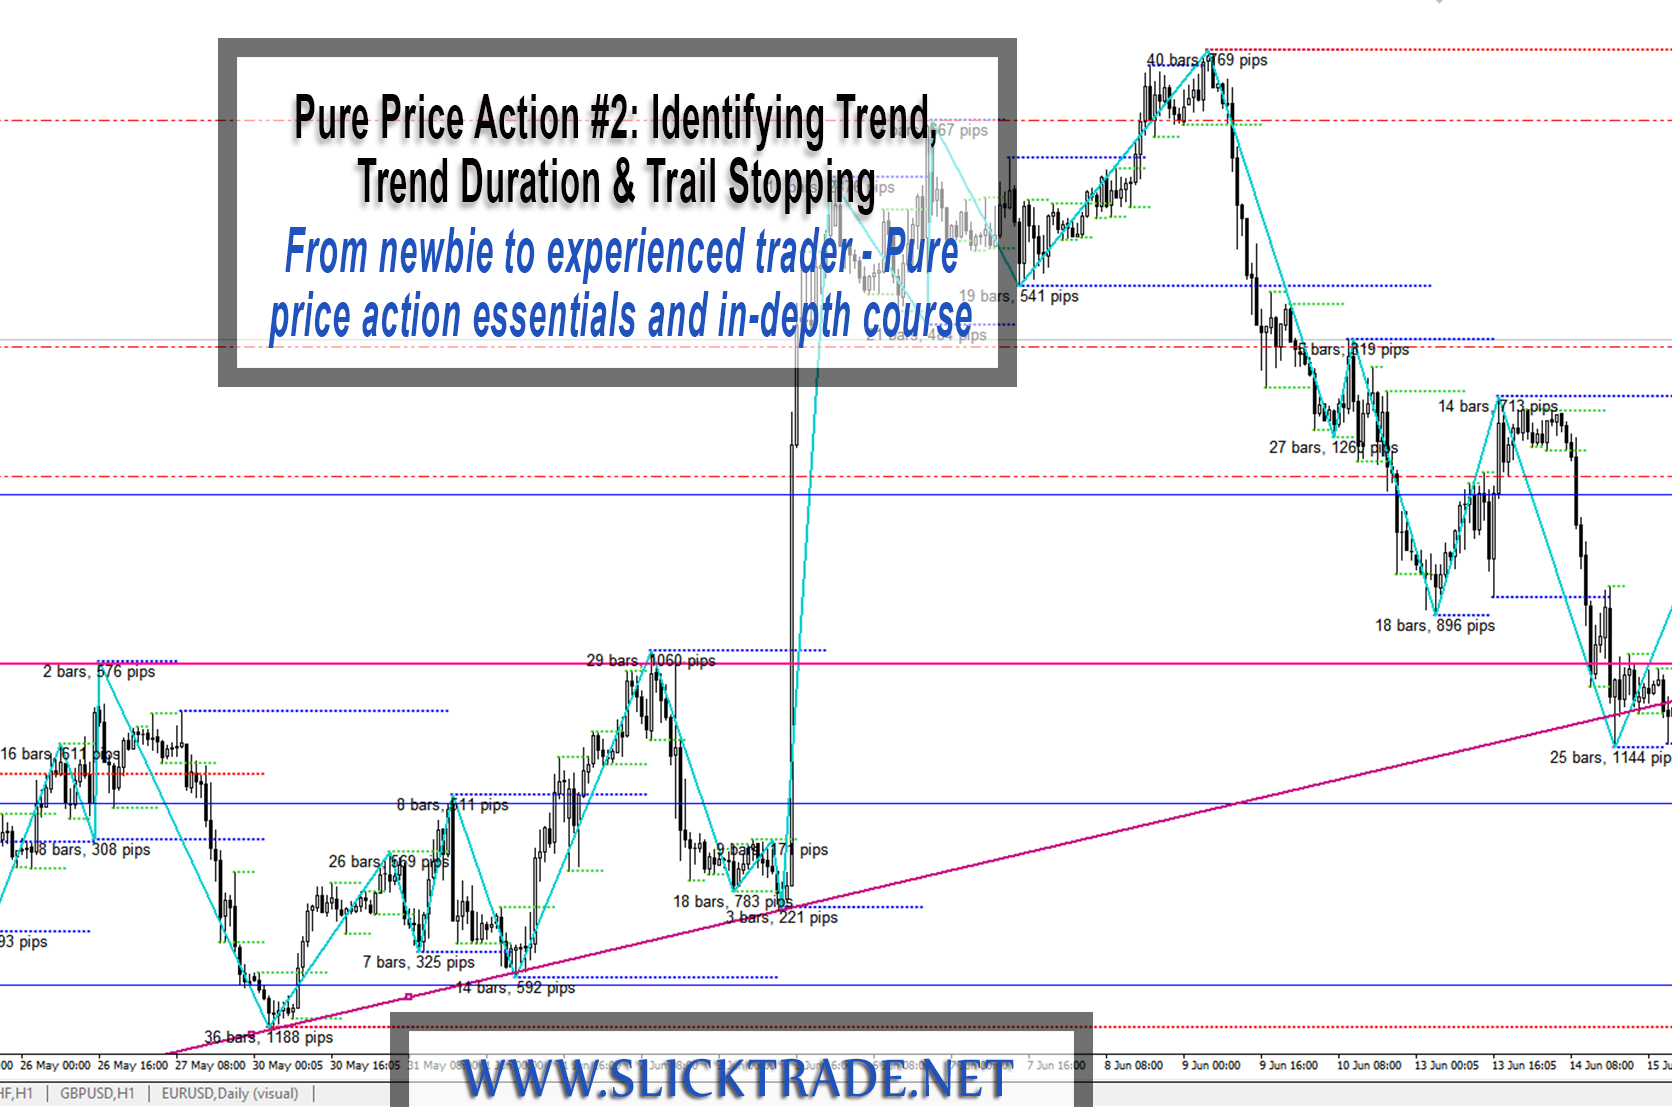 Pure Price Action Series 2 Identifying Trend Trend Duration and Trail Stopping